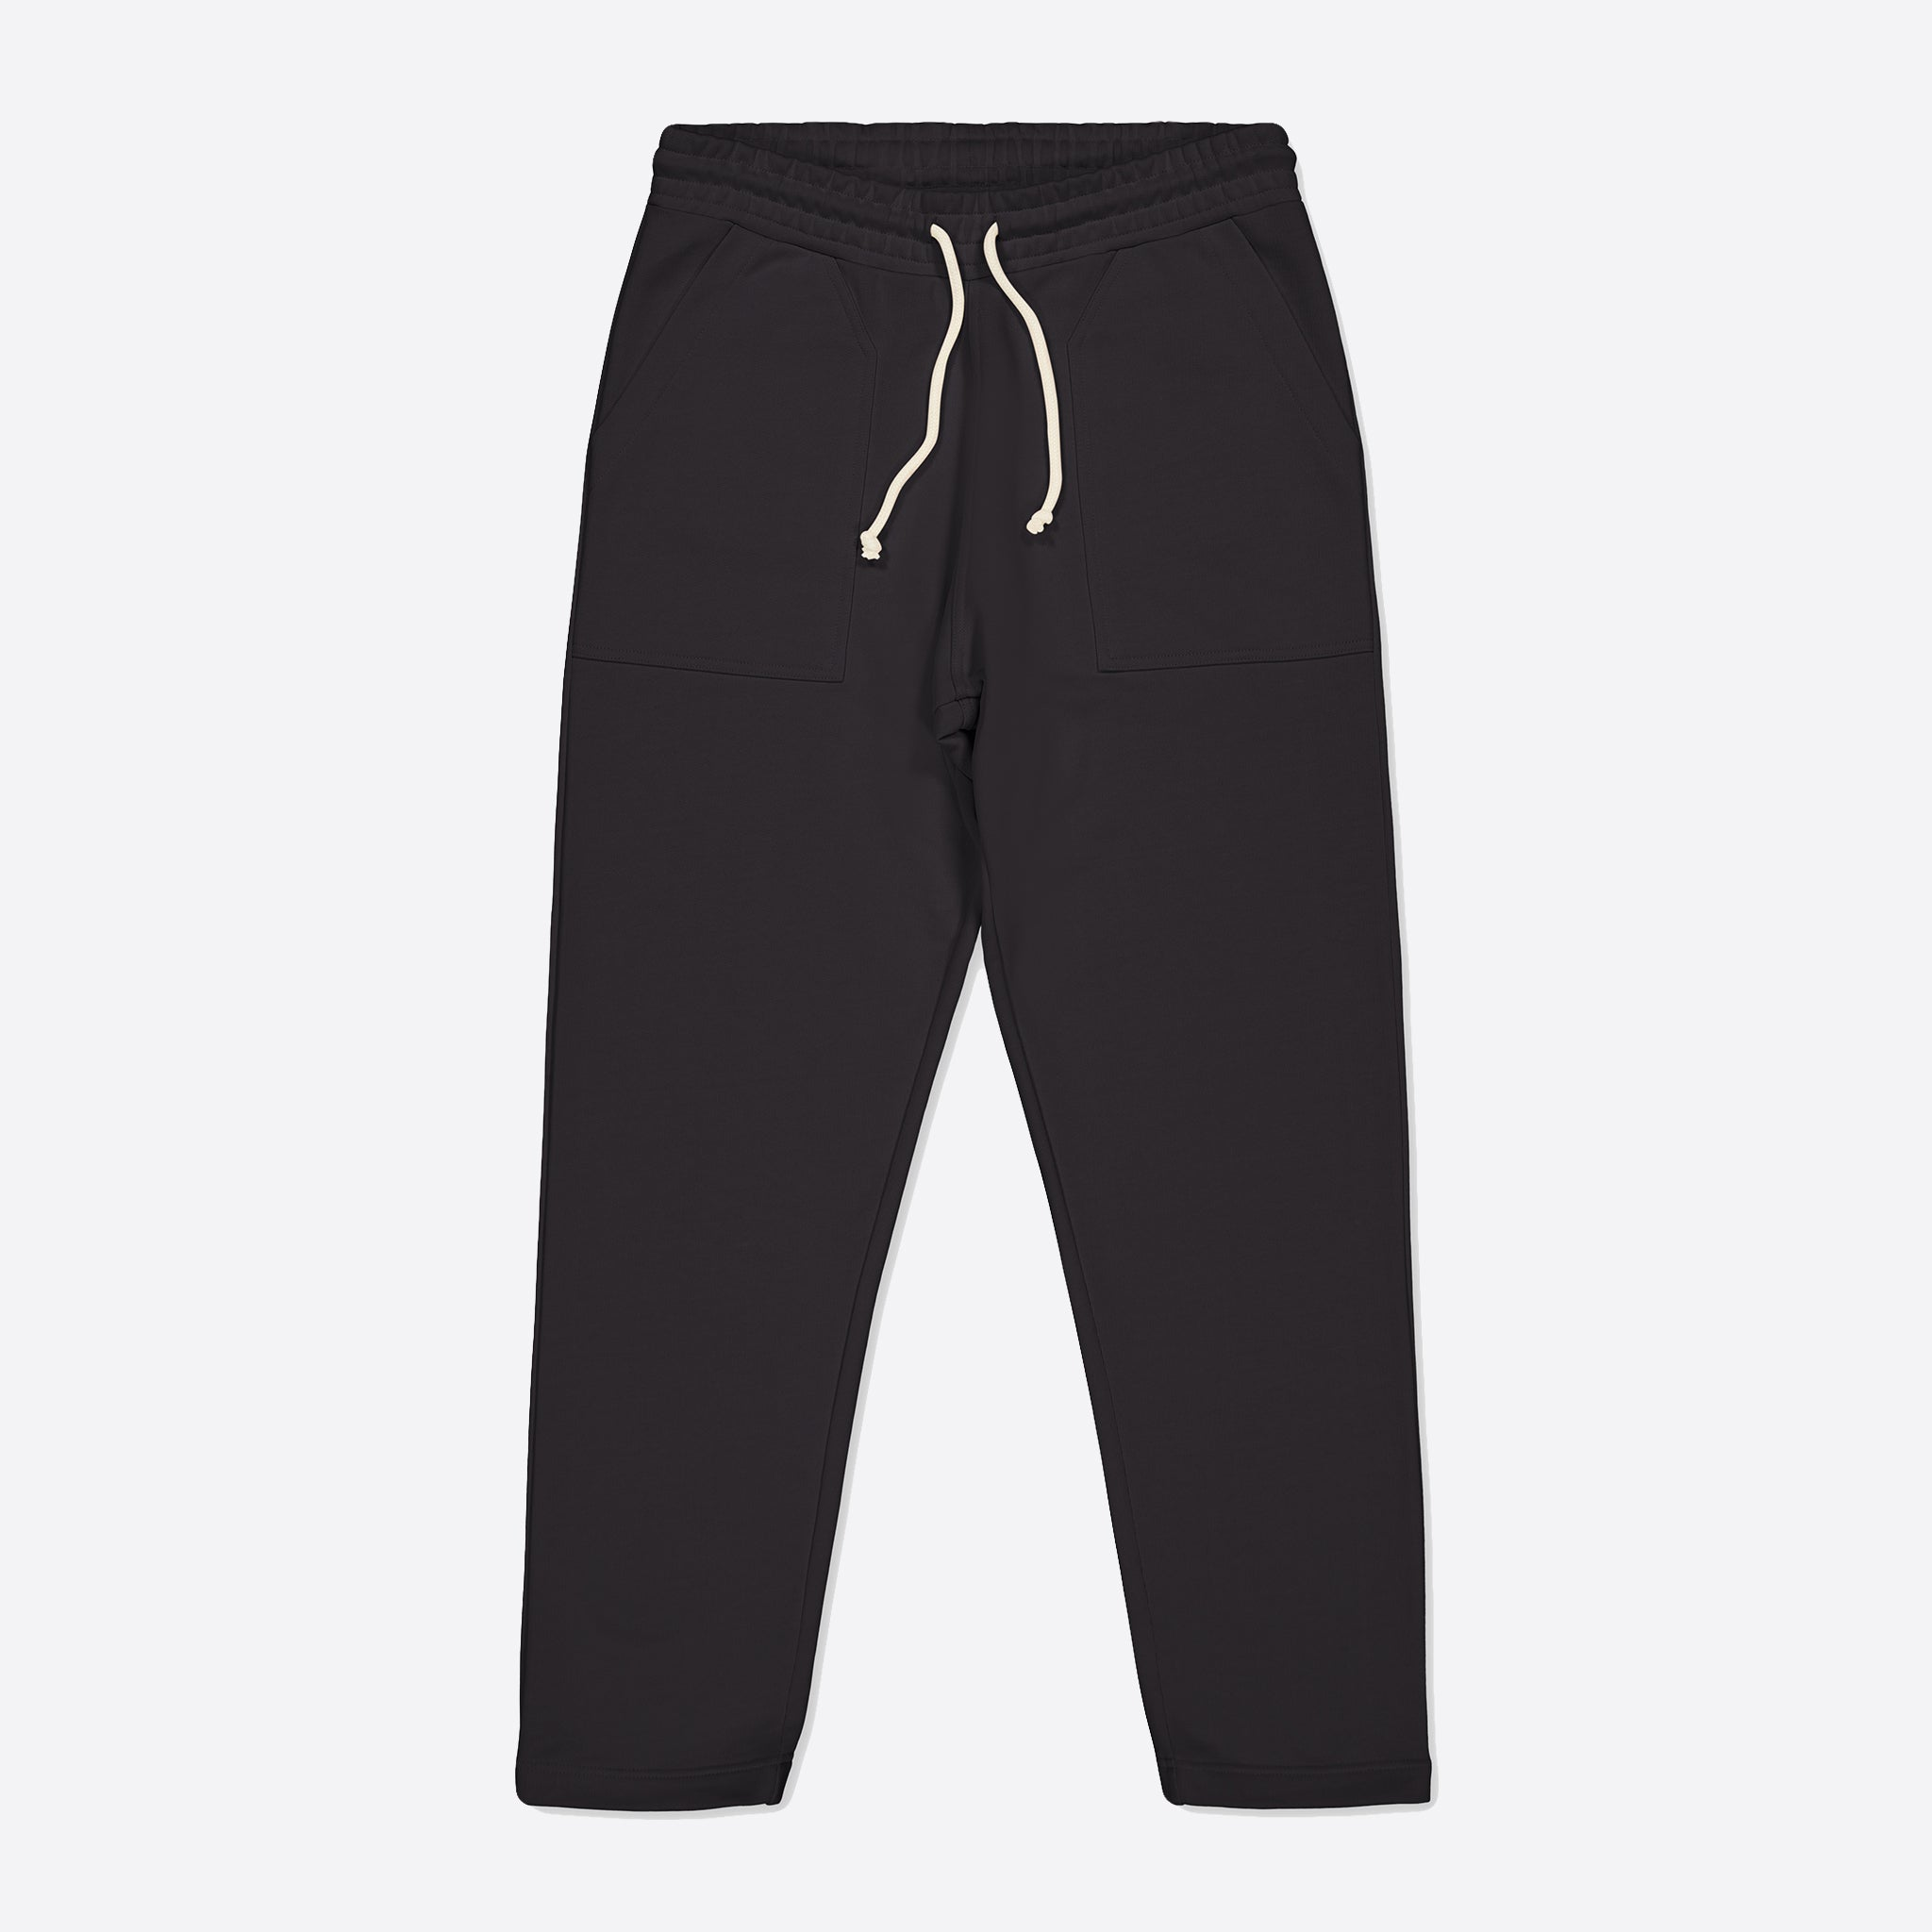 OUTLAND Fatigue Jogg Pants in Charcoal